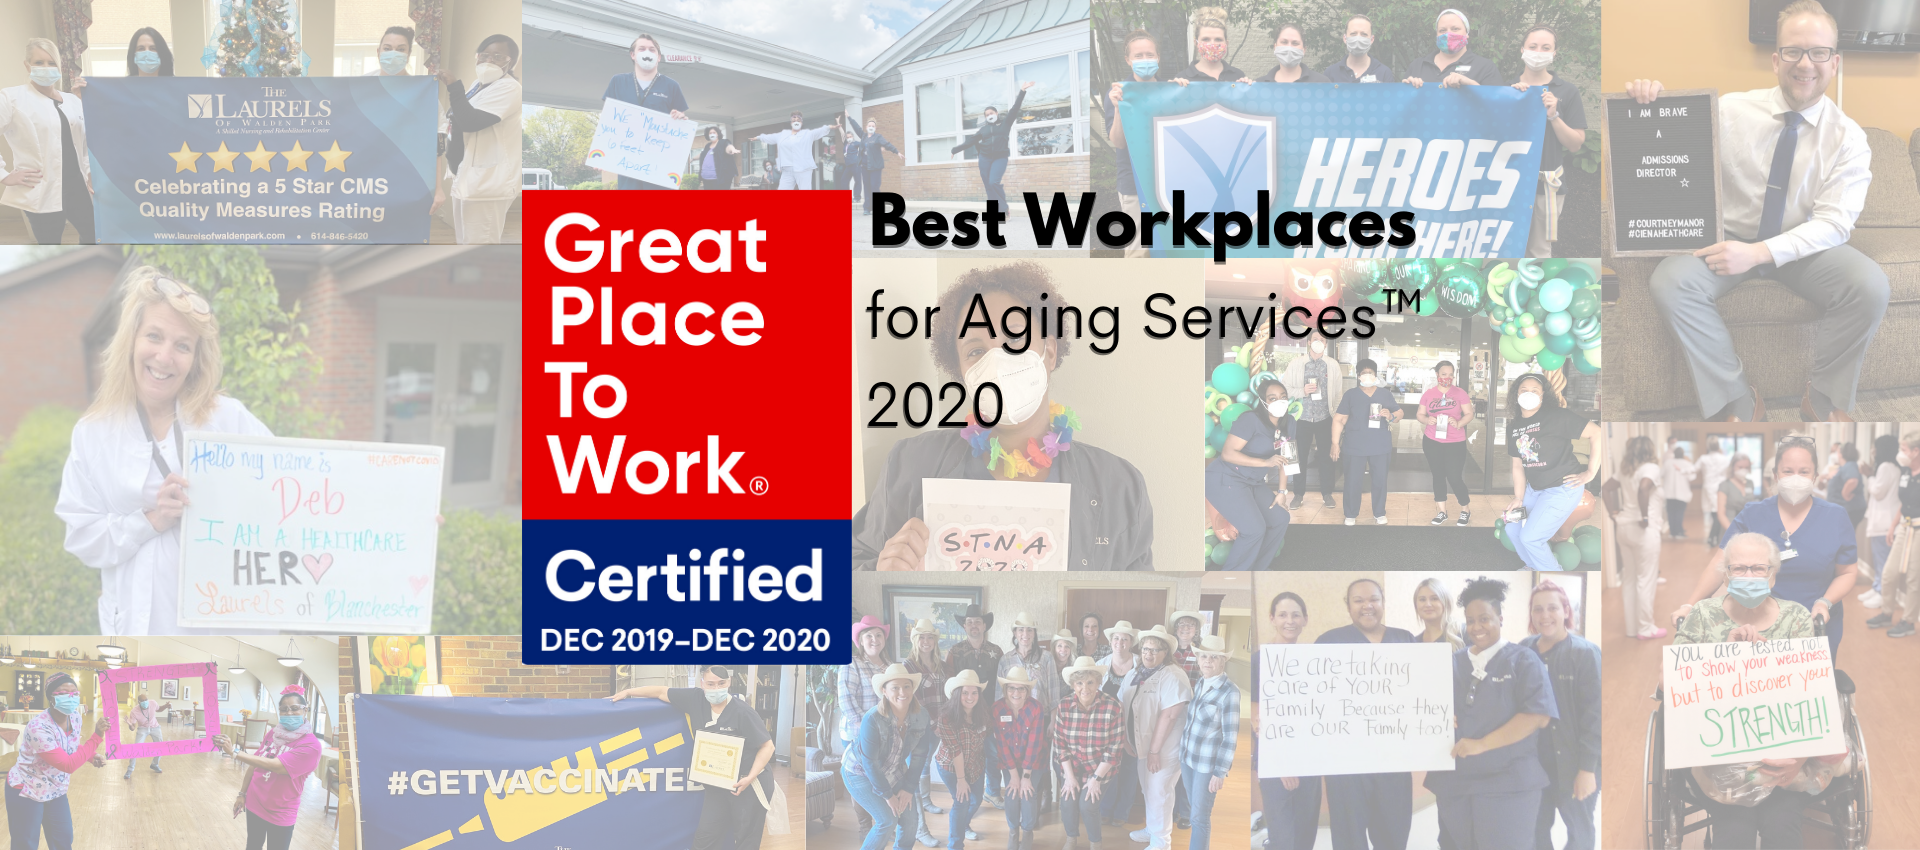 Laurels - A great place to work banner